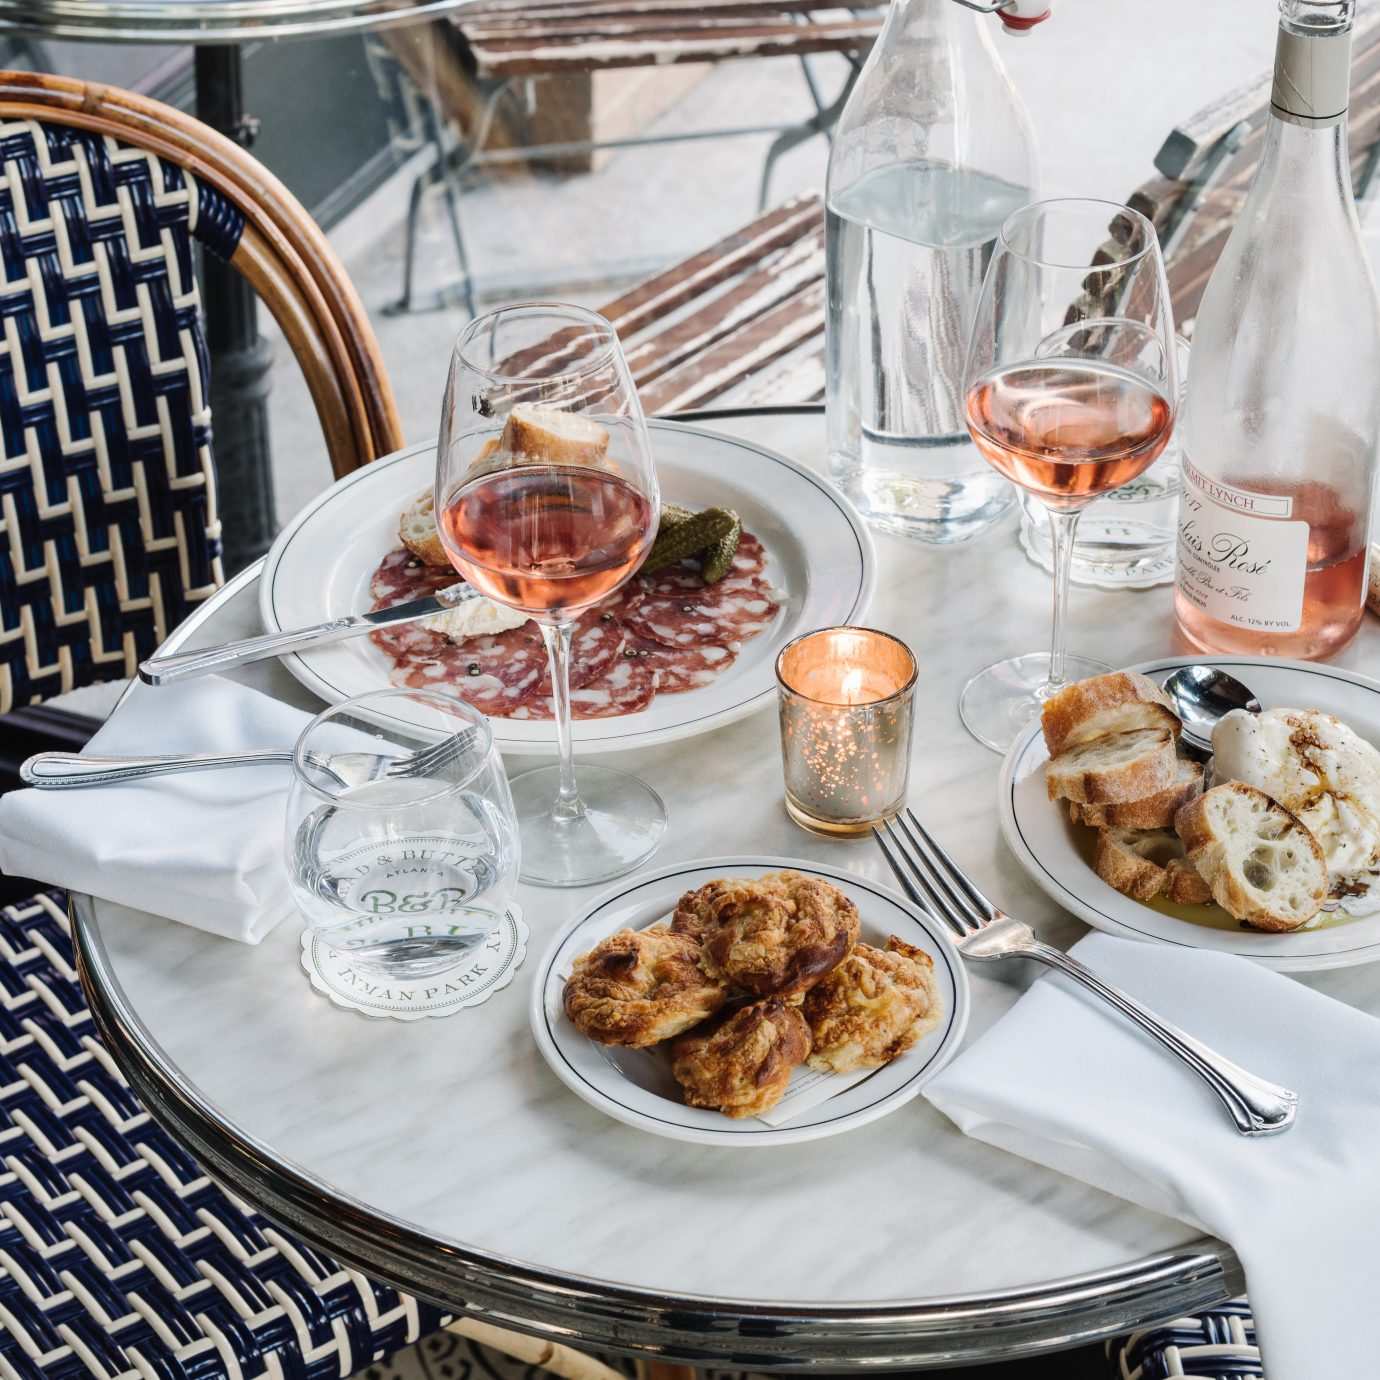 Rose wine and numerous food options on a table